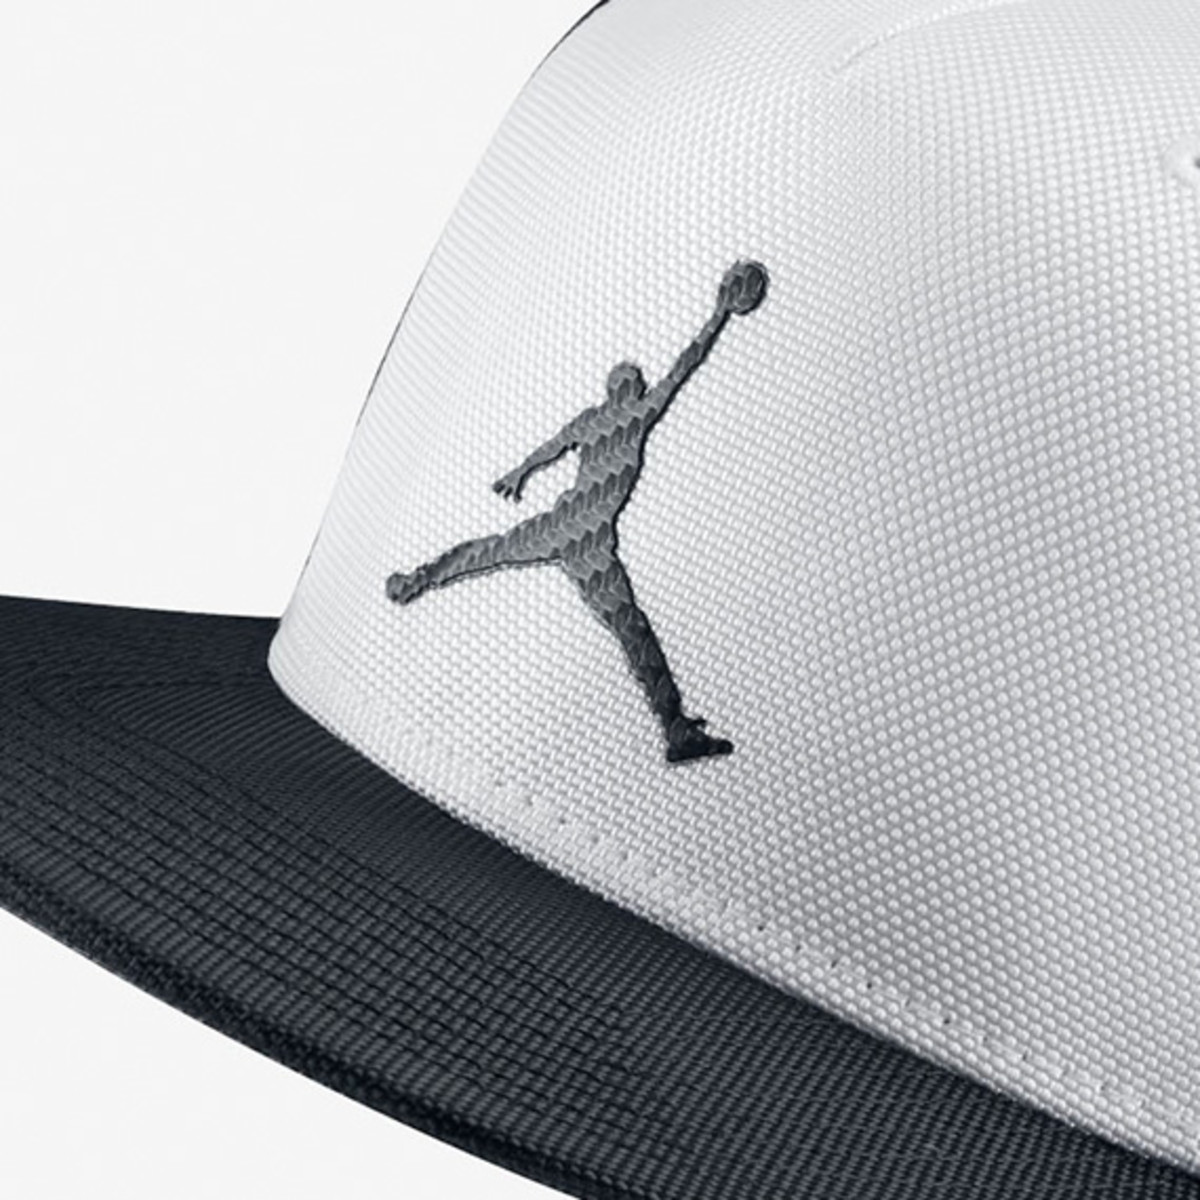 air-jordan-11-low-concord-apparel-accessories-collection-03